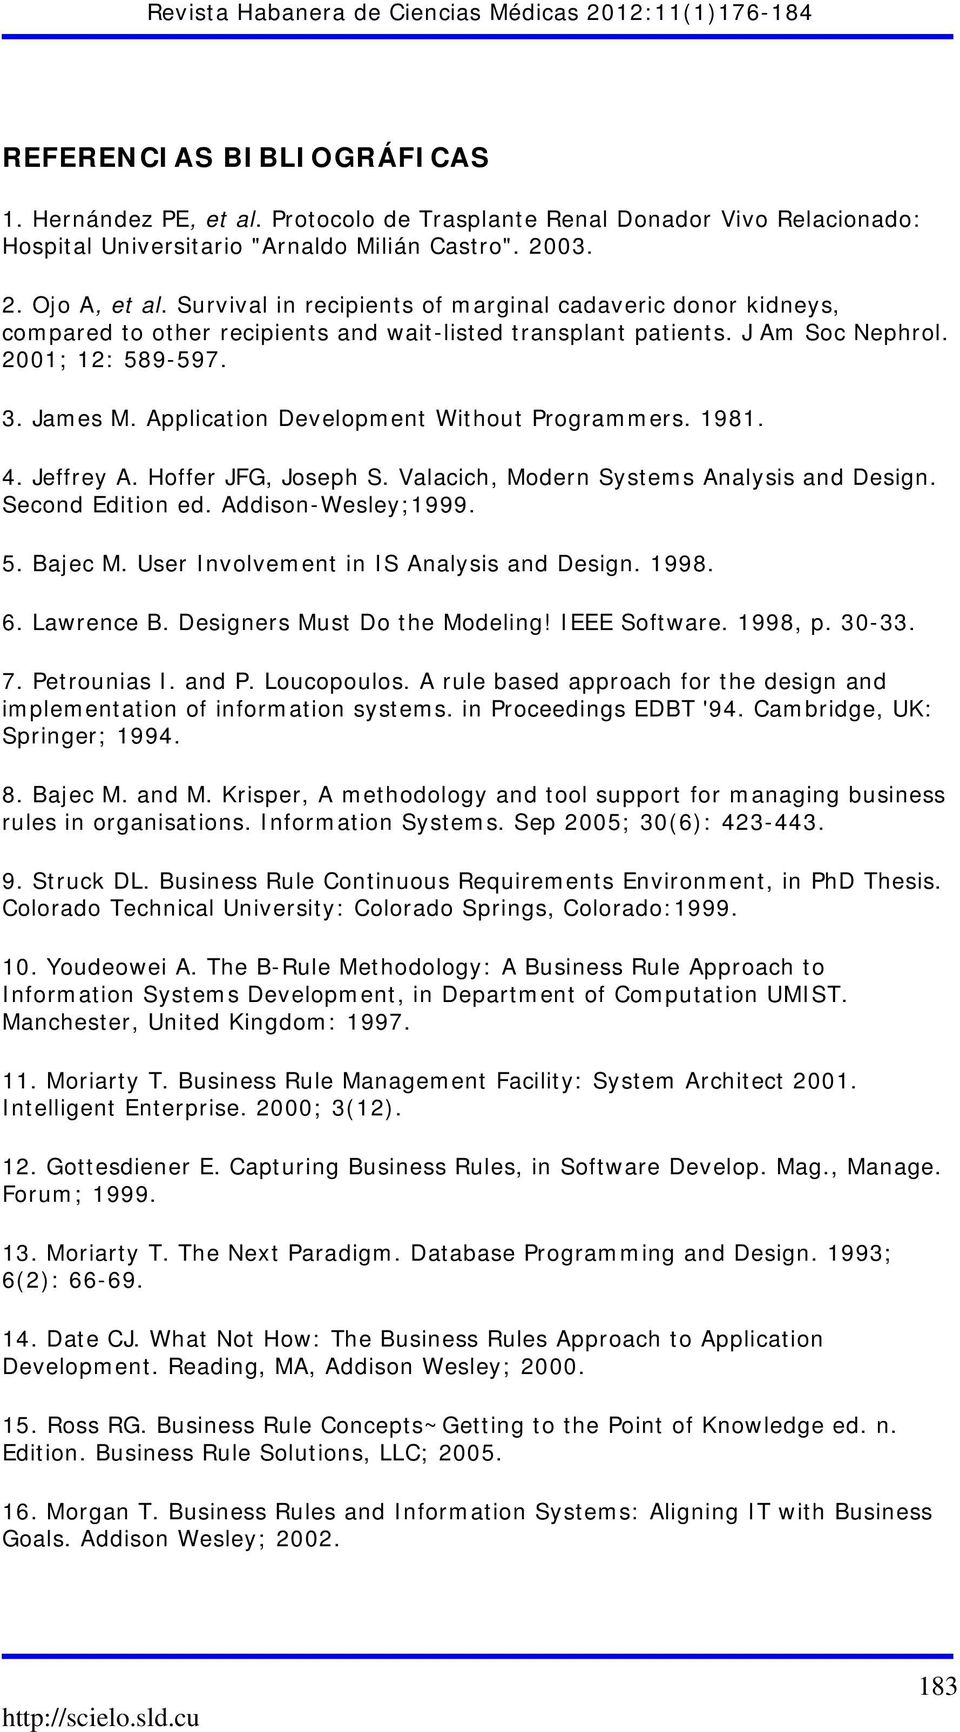 Application Development Without Programmers. 1981. 4. Jeffrey A. Hoffer JFG, Joseph S. Valacich, Modern Systems Analysis and Design. Second Edition ed. Addison-Wesley;1999. 5. Bajec M.